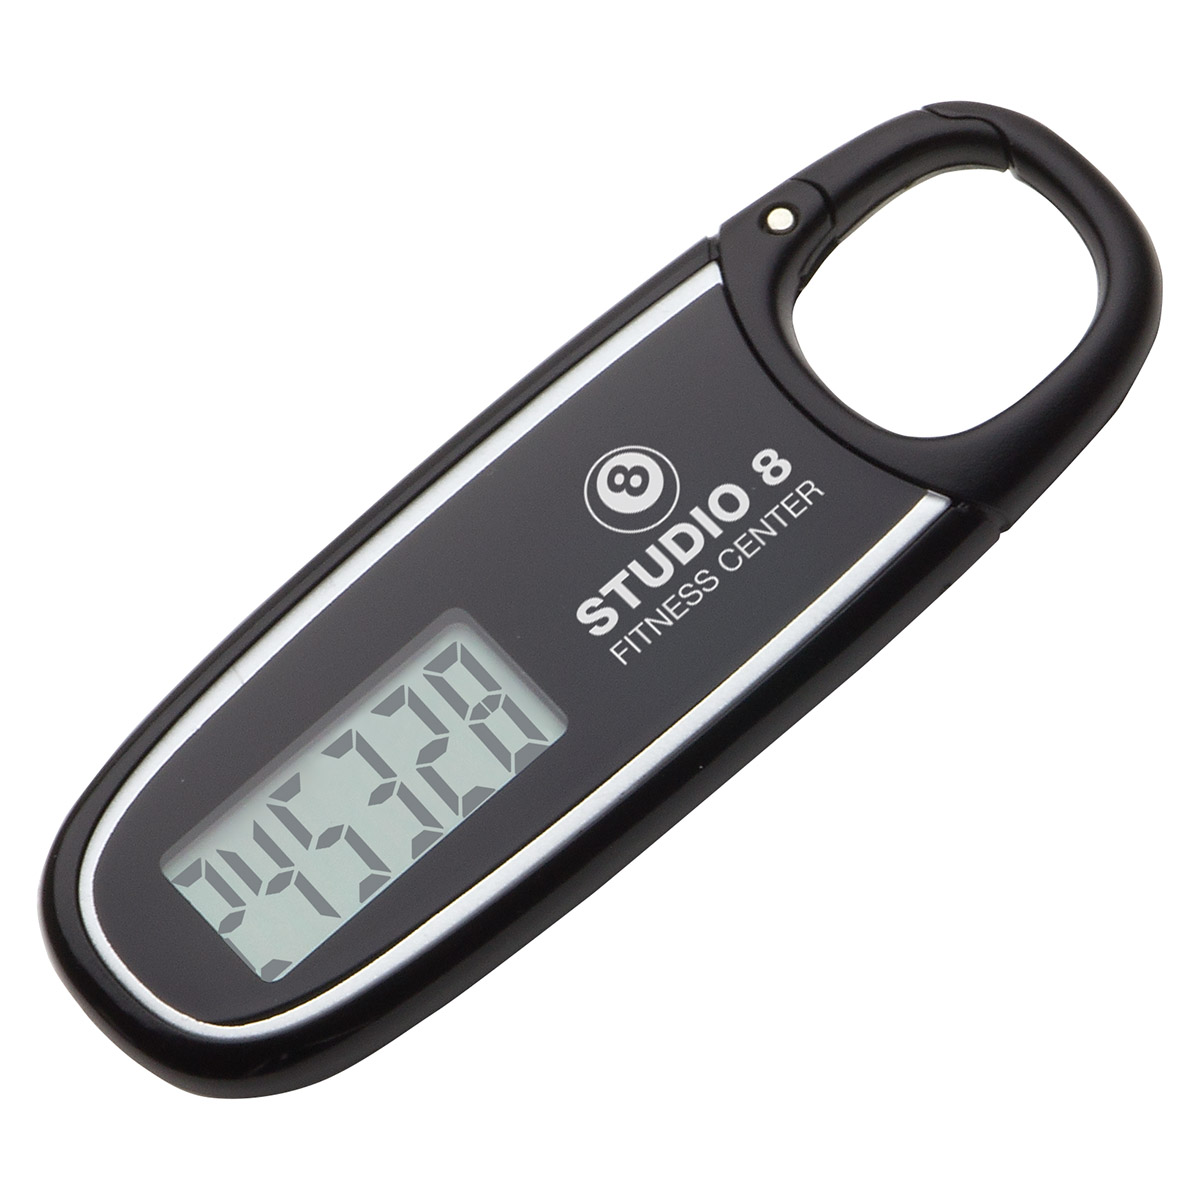 Million Step 3D Sensor Pedometer, WHF-MS15 - 1 Colour Imprint